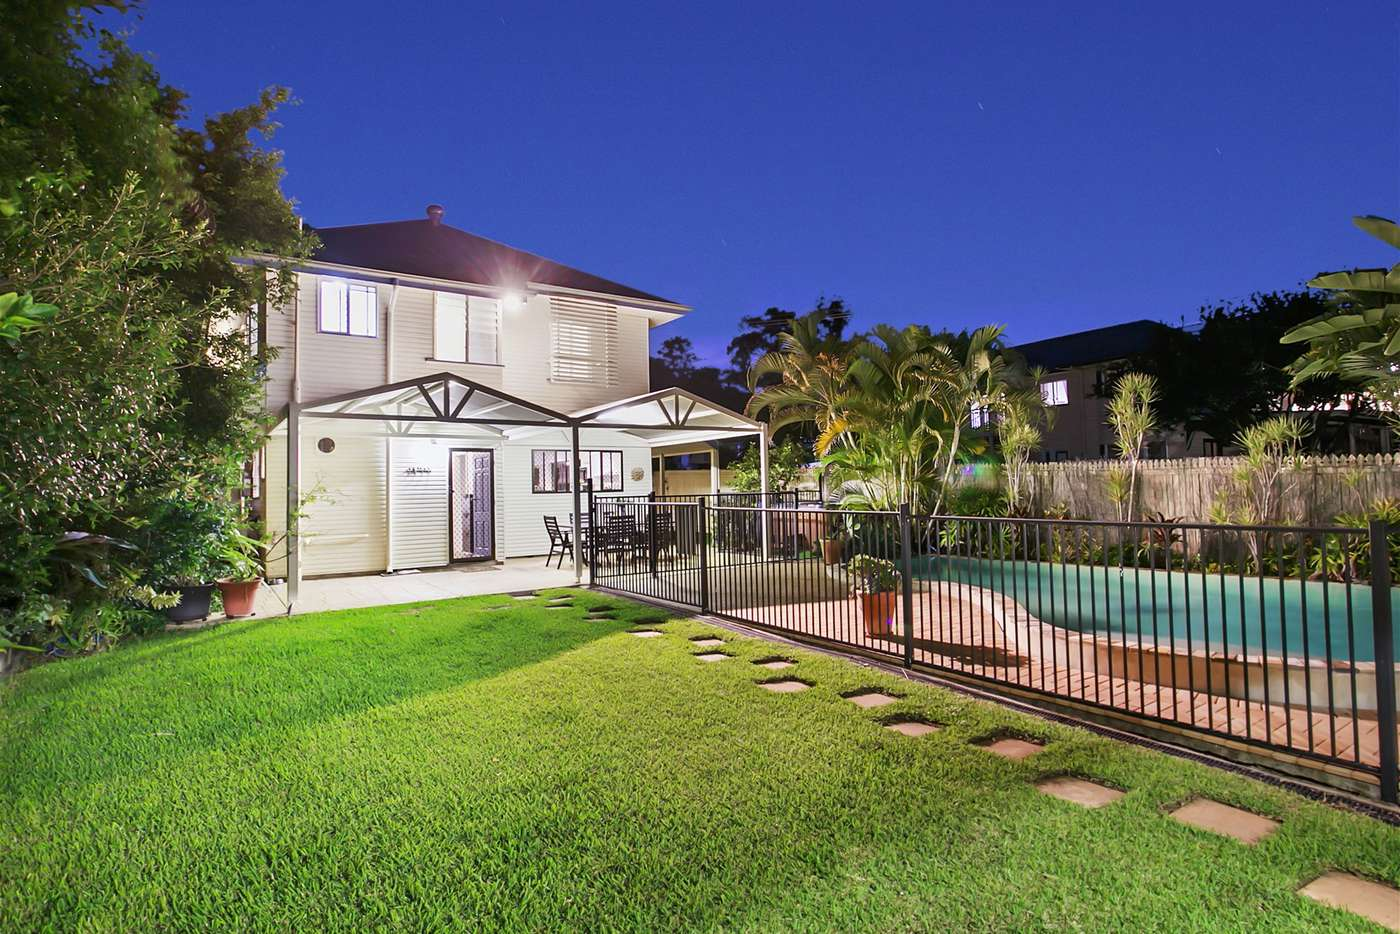 Main view of Homely house listing, 25 Bentham Street, Mount Gravatt QLD 4122